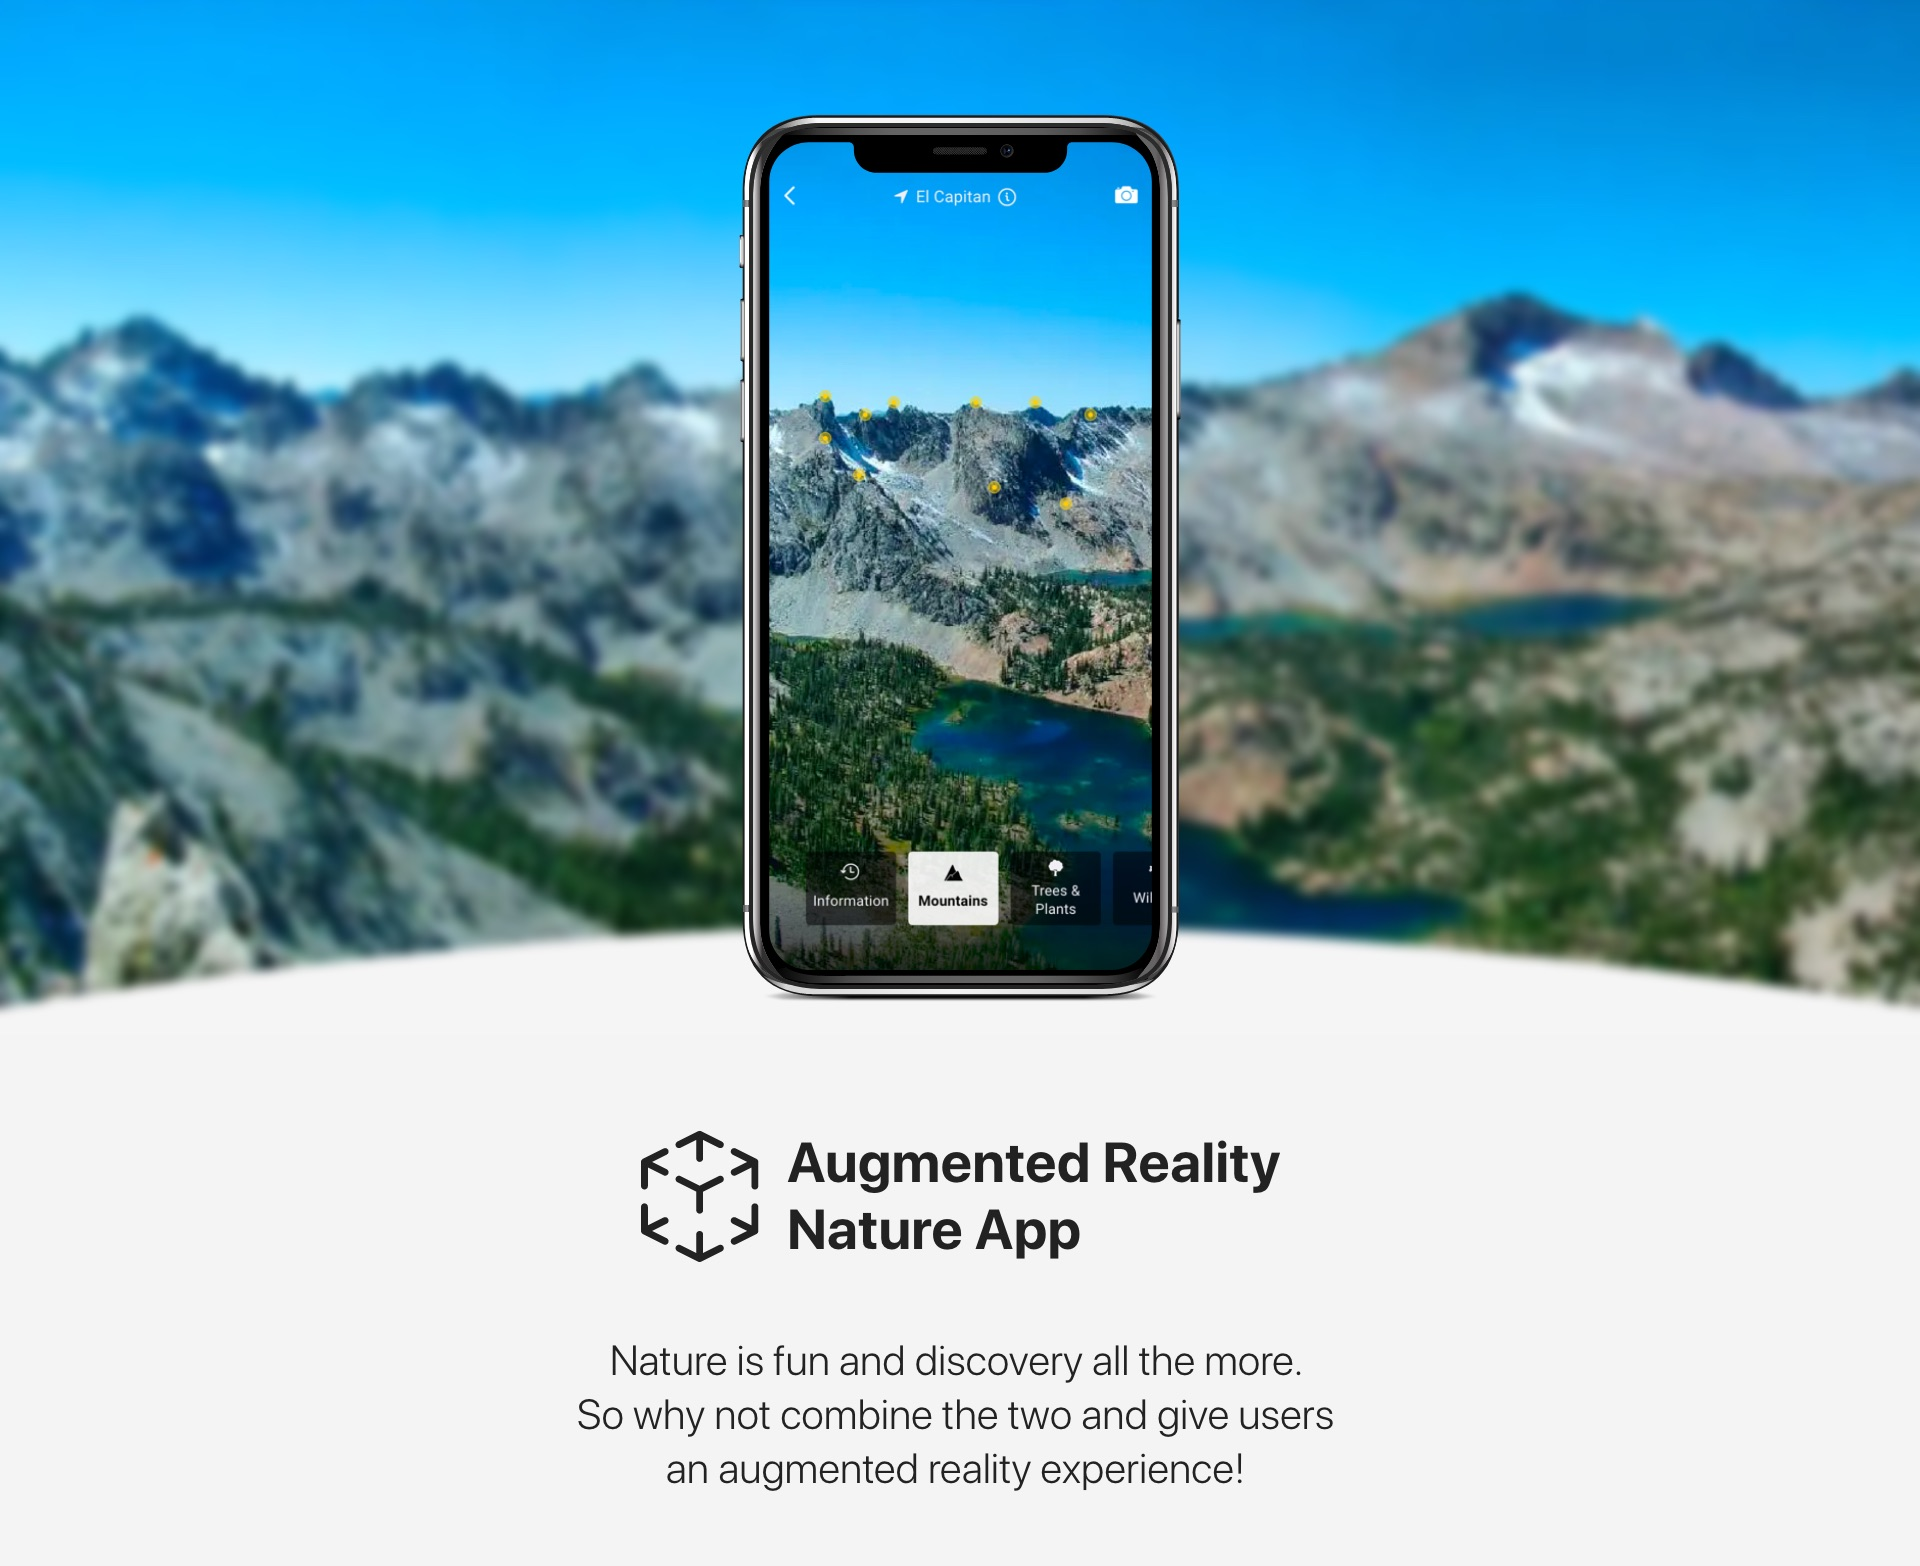 Augmented Reality Nature App 01